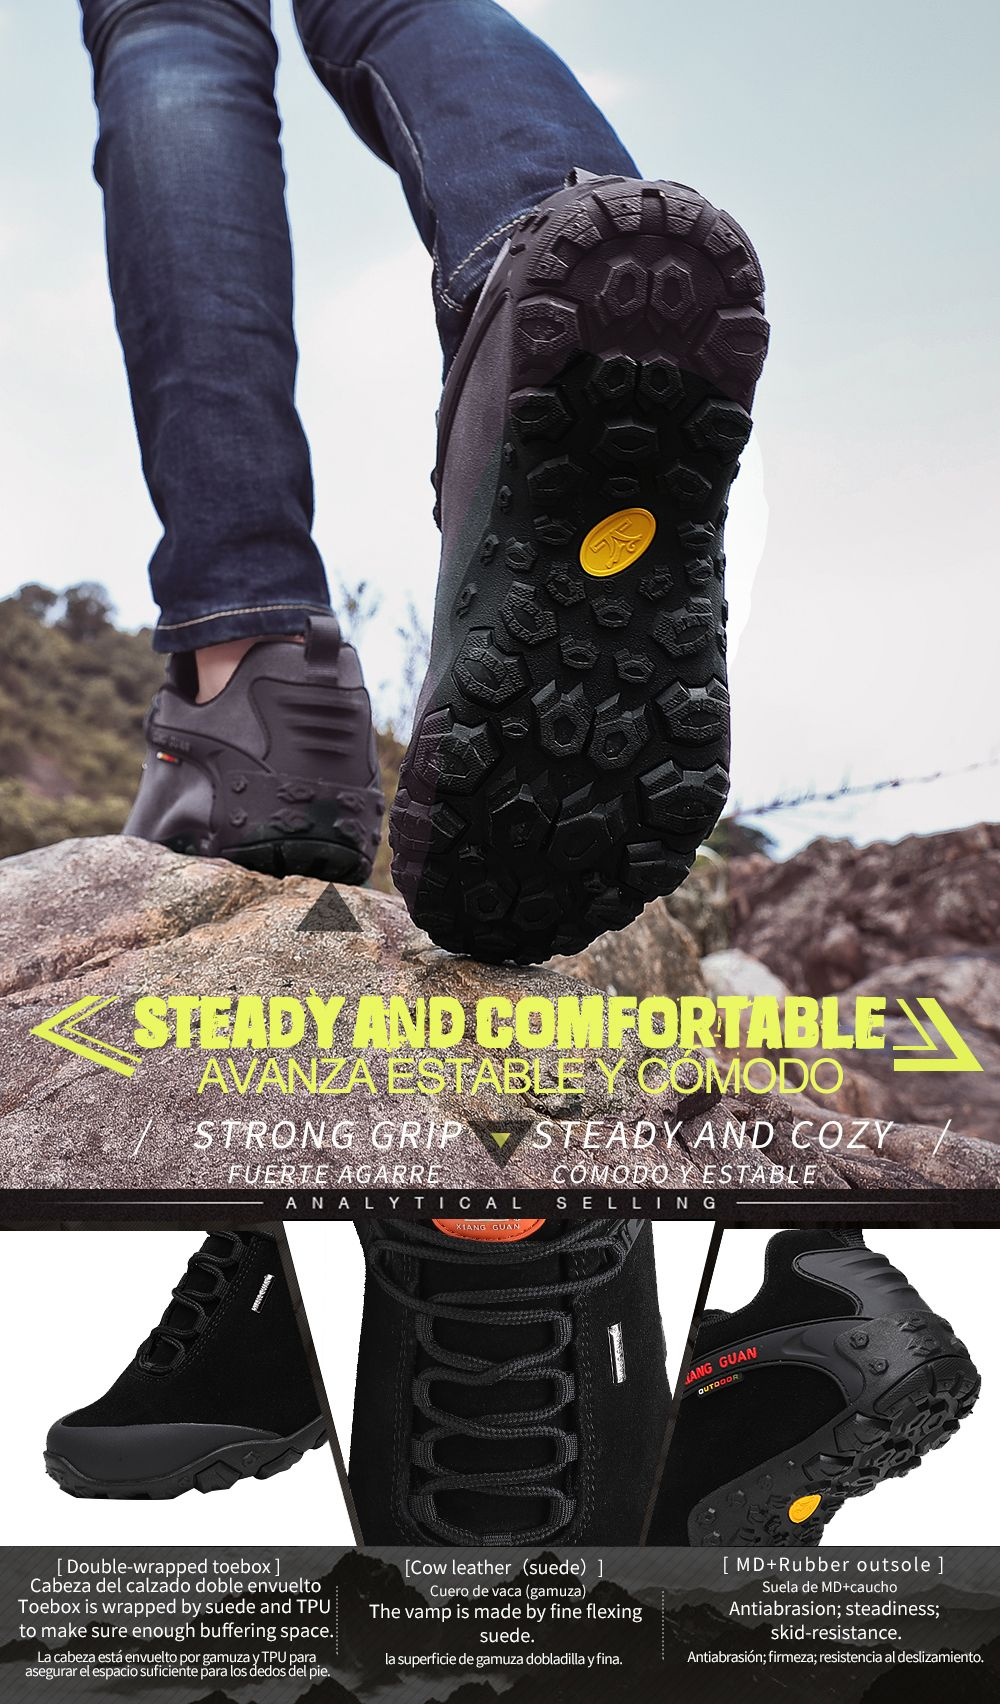 54978e654c0 Buy Best Mens Walking Boots Grey Waterproof Hiking Boots Sale ...